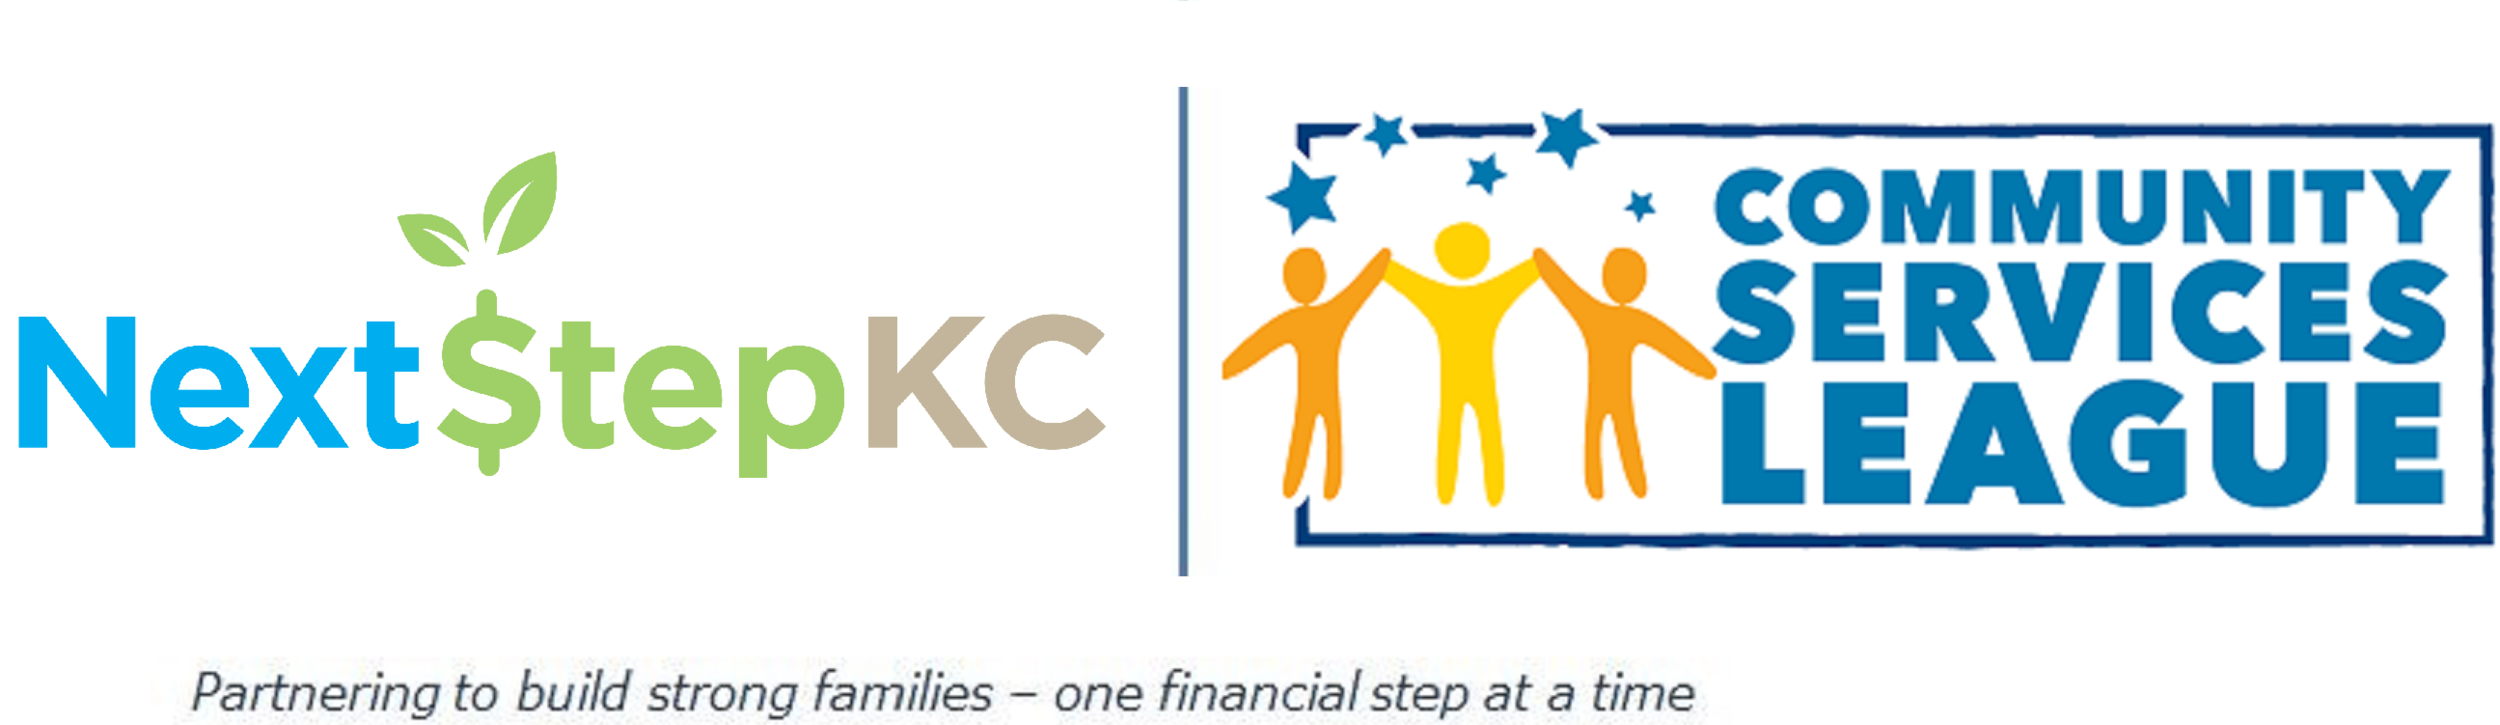 Next Step KC Loan Program